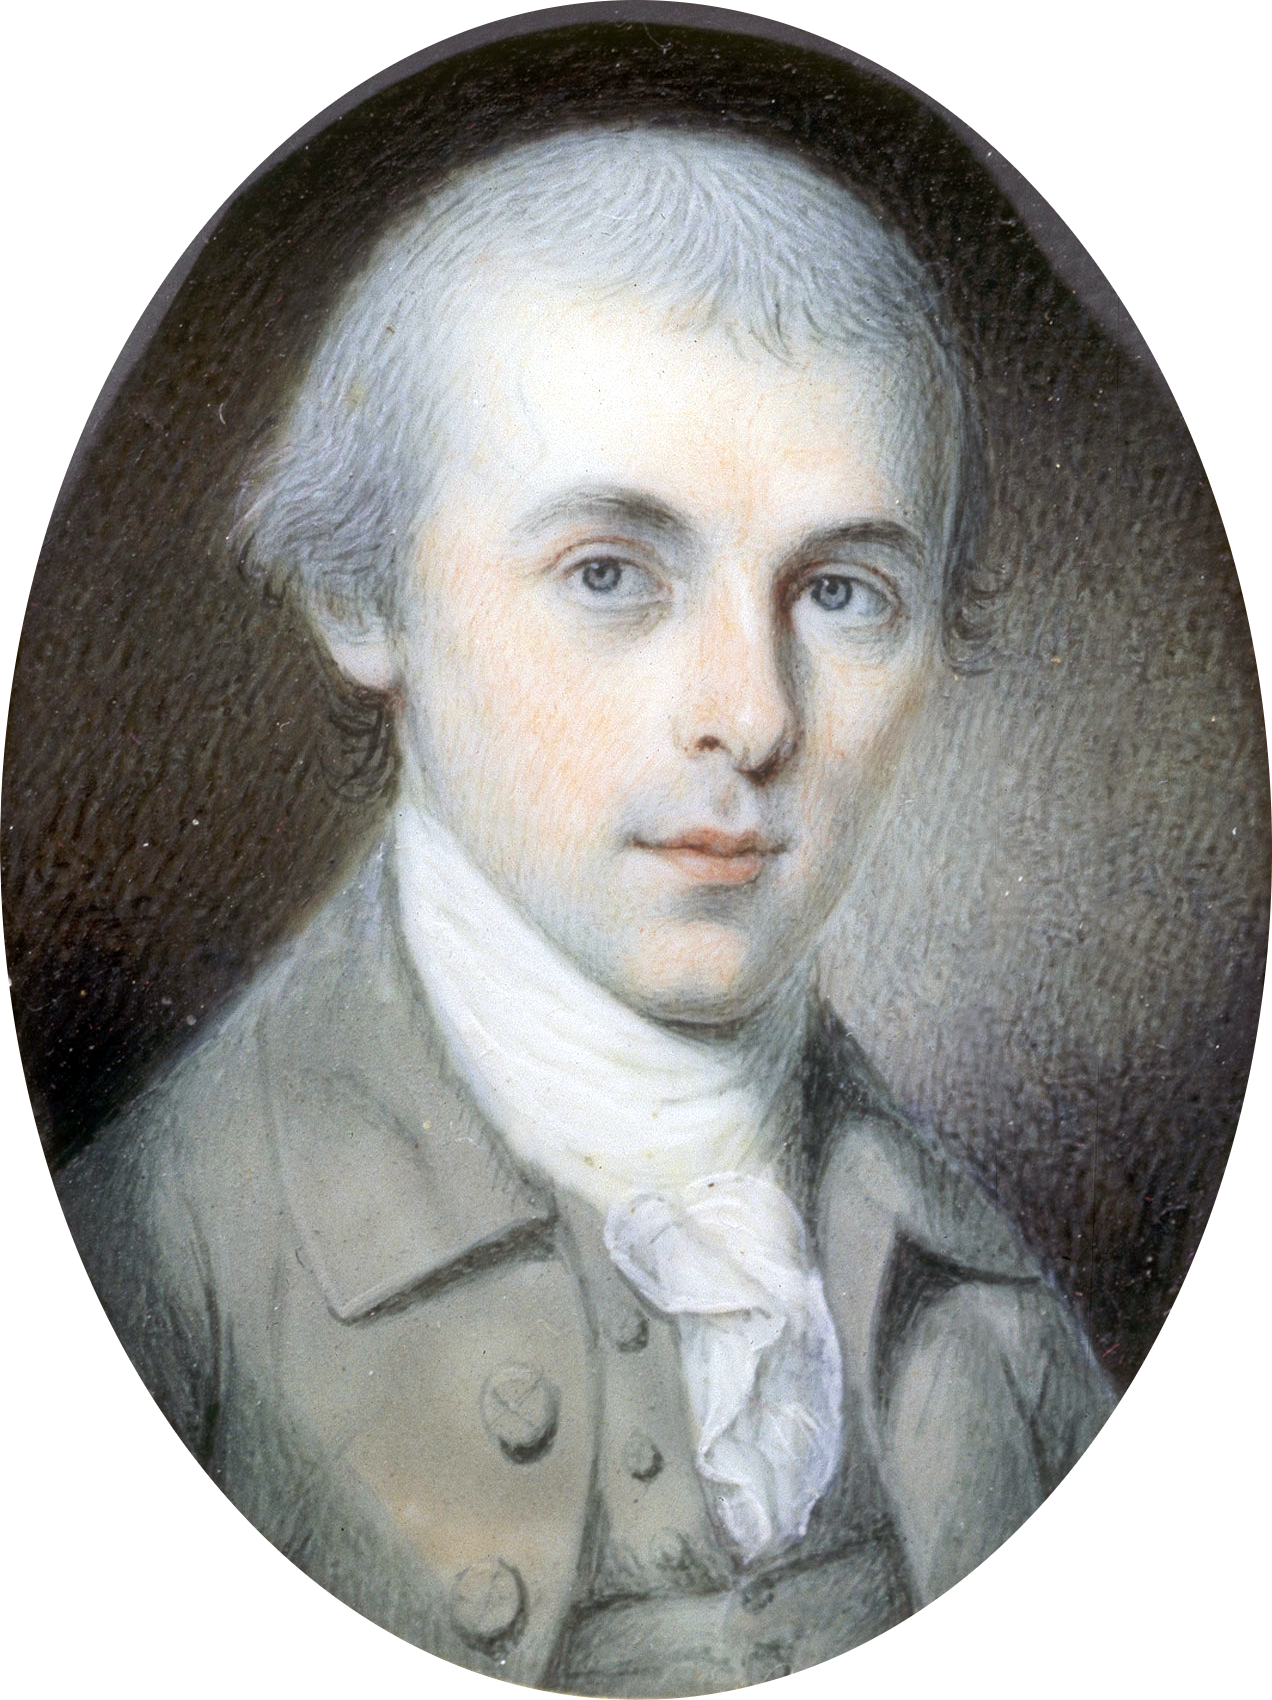 File:James Madison, by Charles Willson Peale, 1783.png